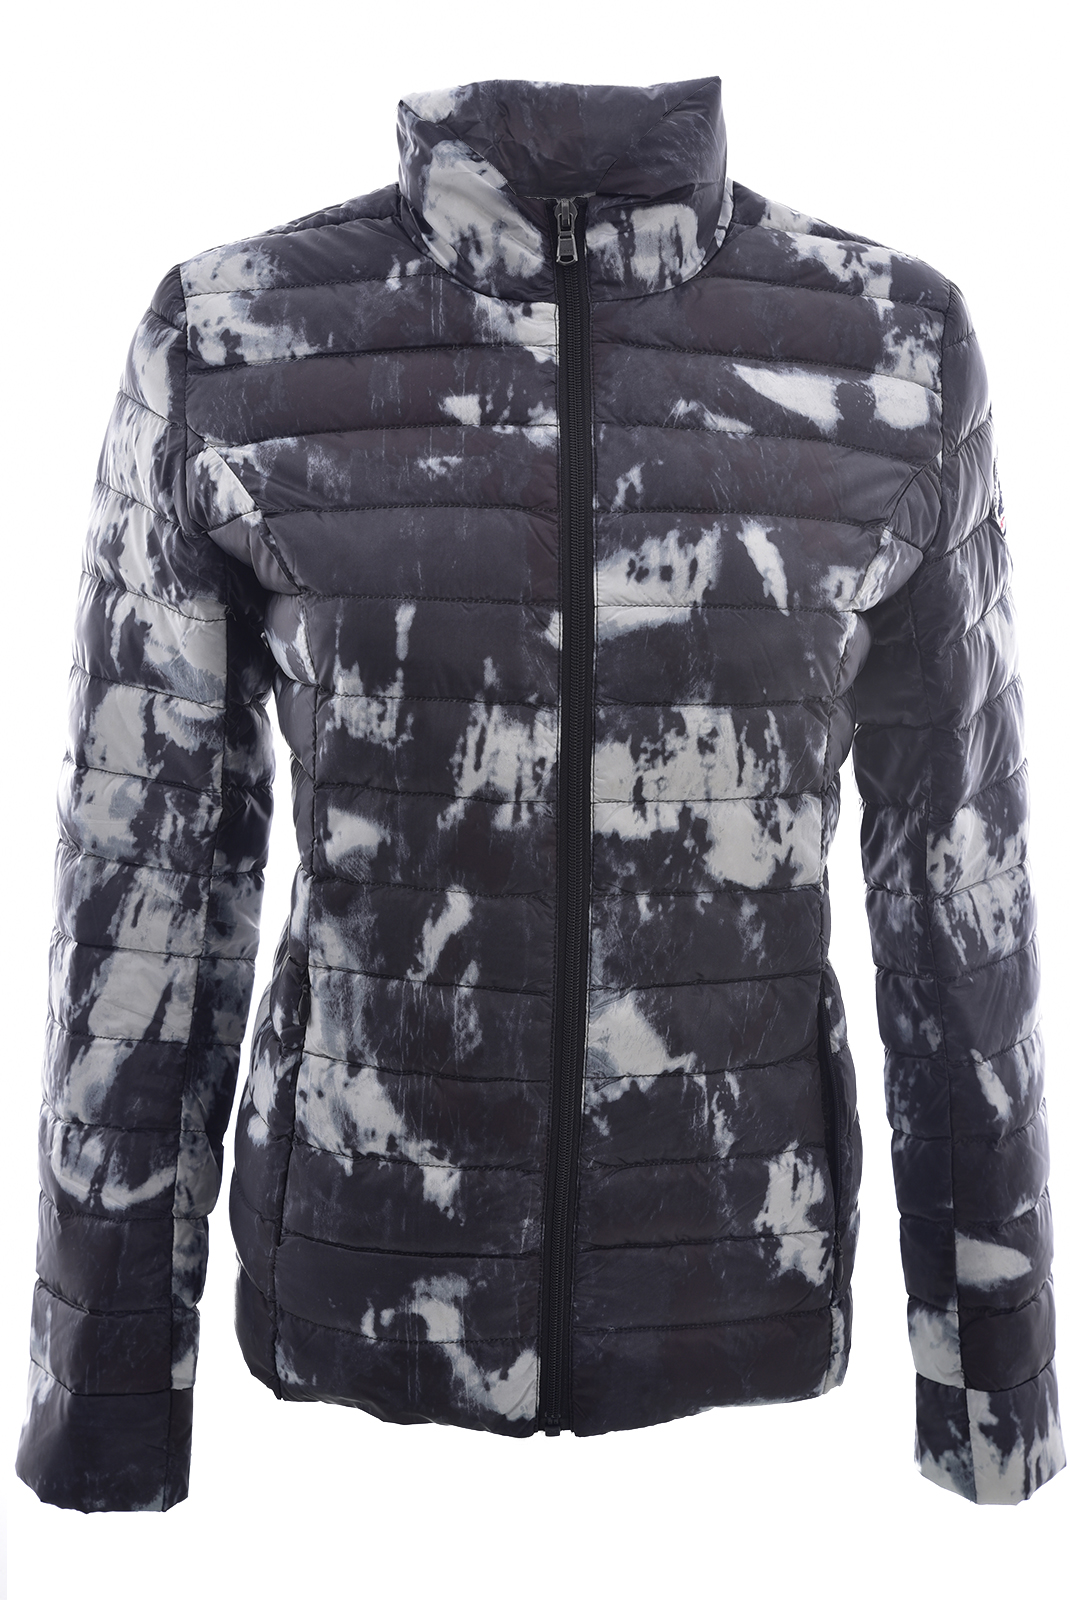 Blouson  Just over the top CHA 966 TIE AND DYE